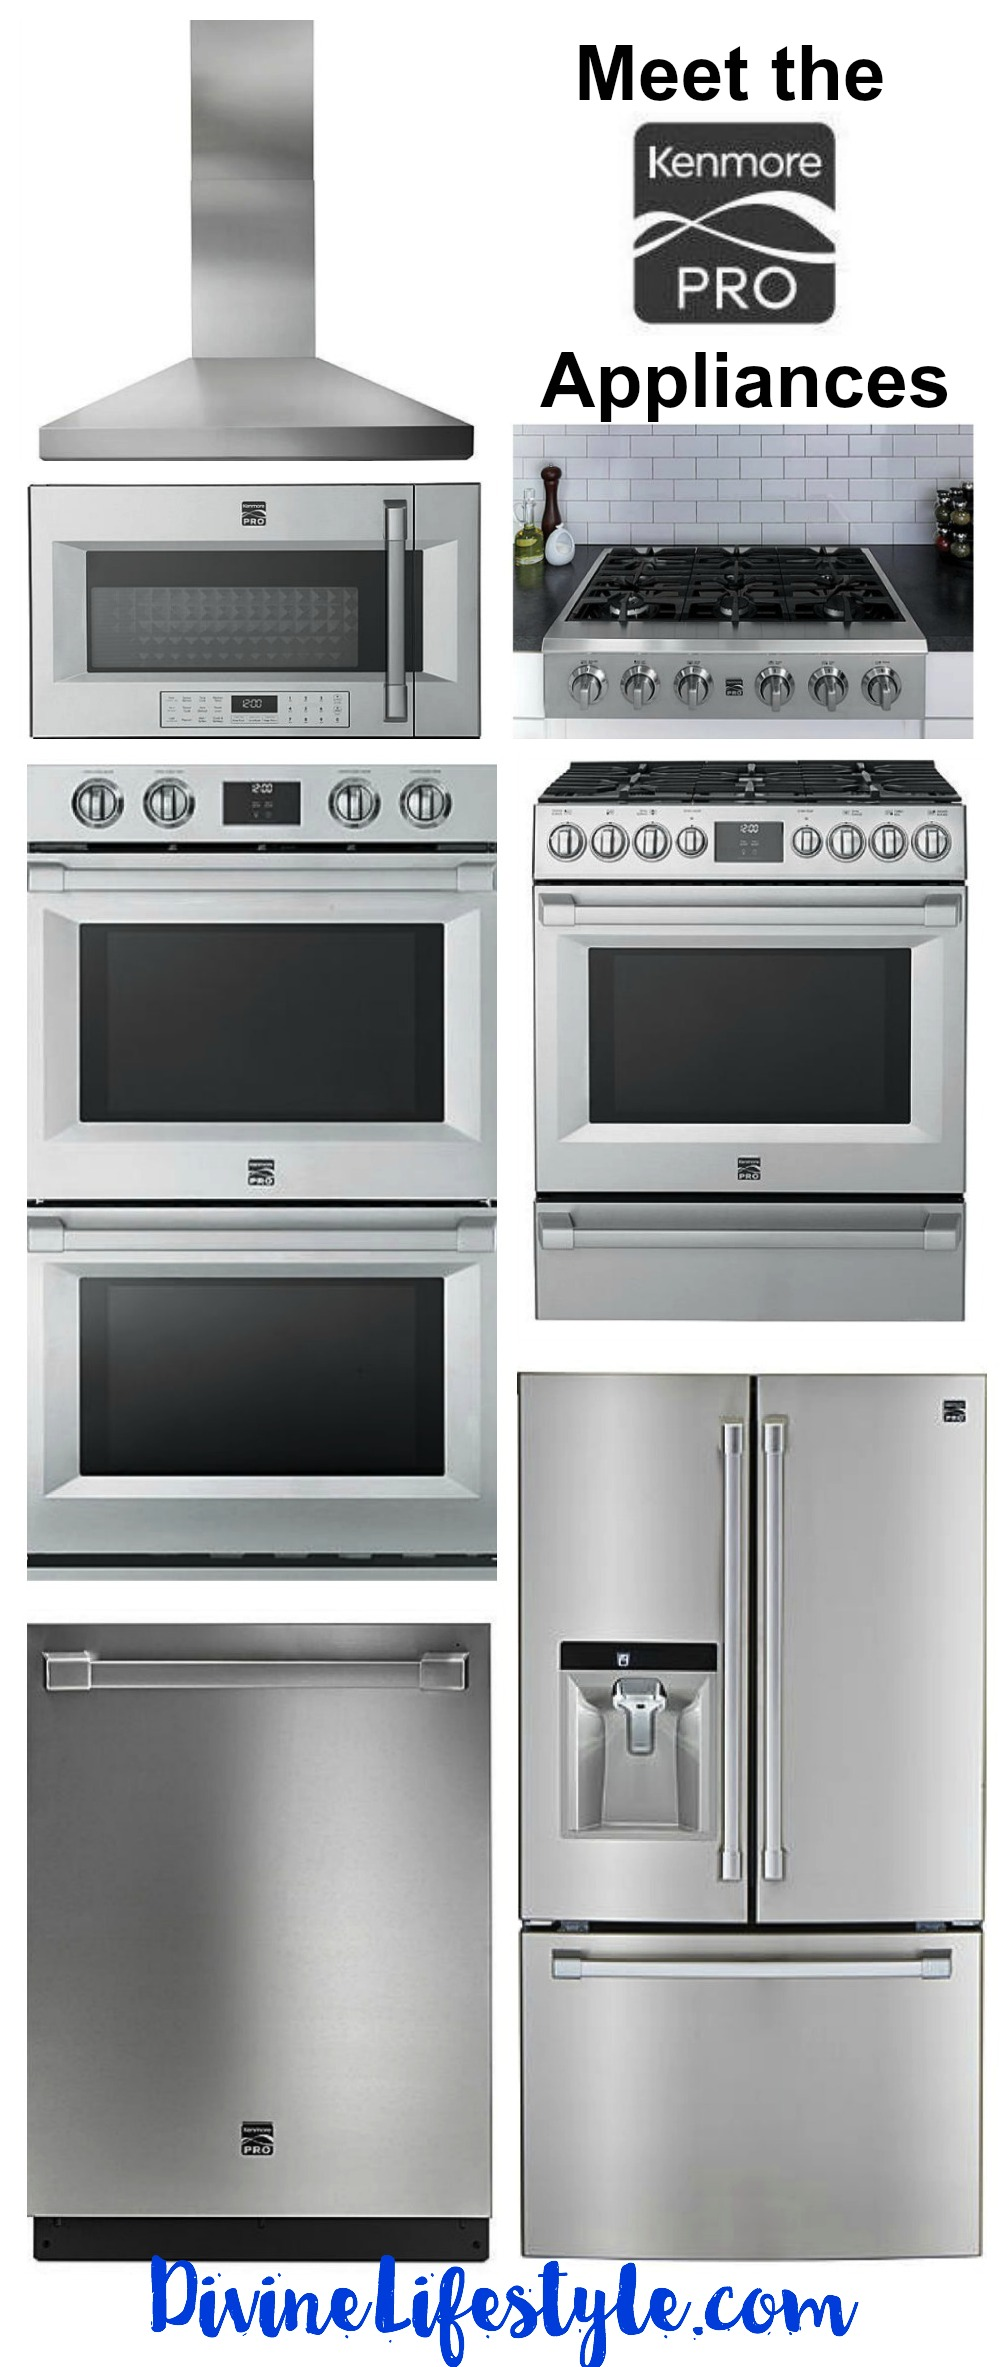 Kenmore Pro Kitchen Appliances